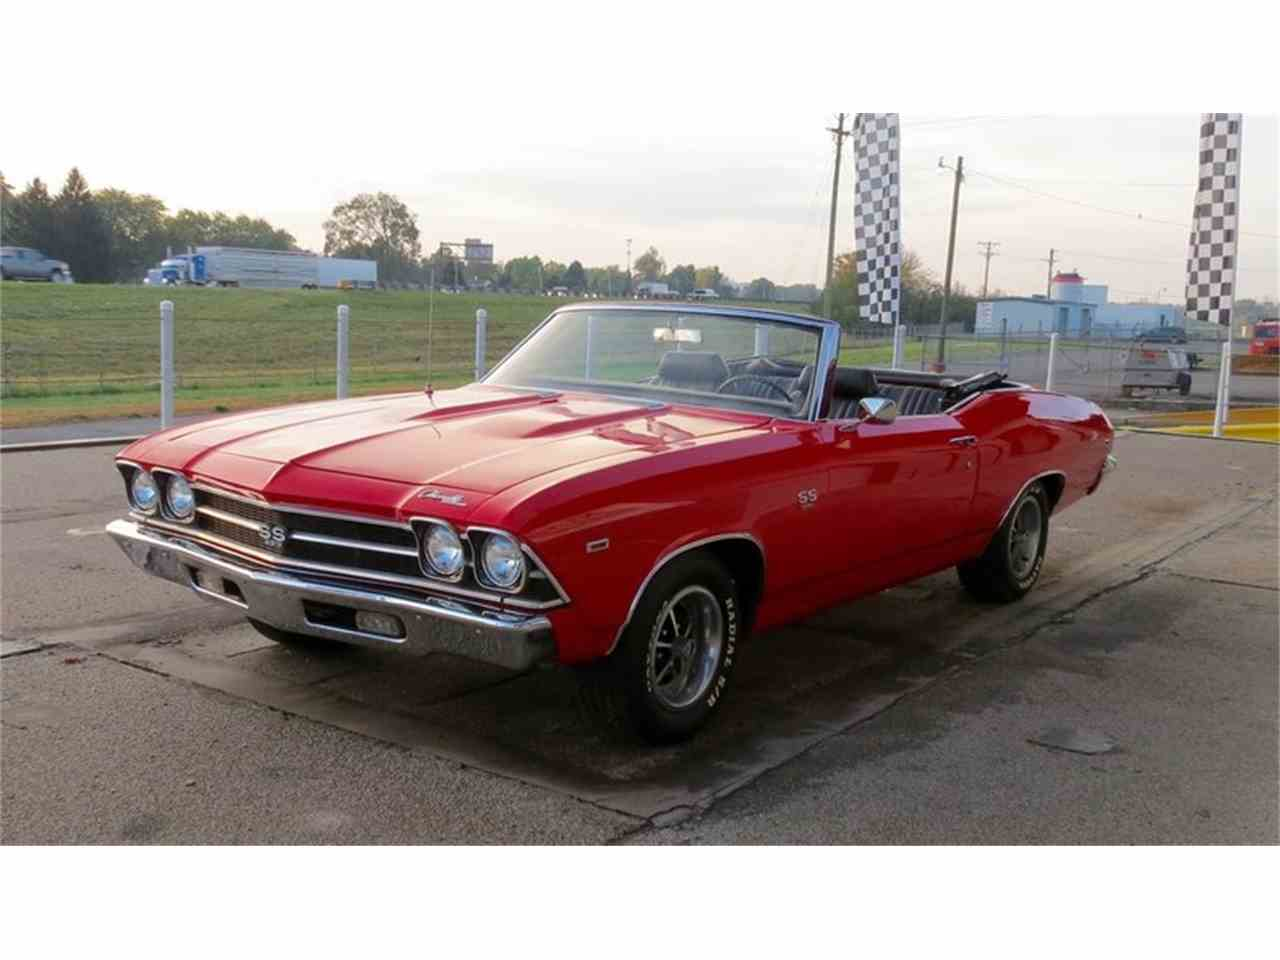 Cars In Dayton Ohio For Sale Under